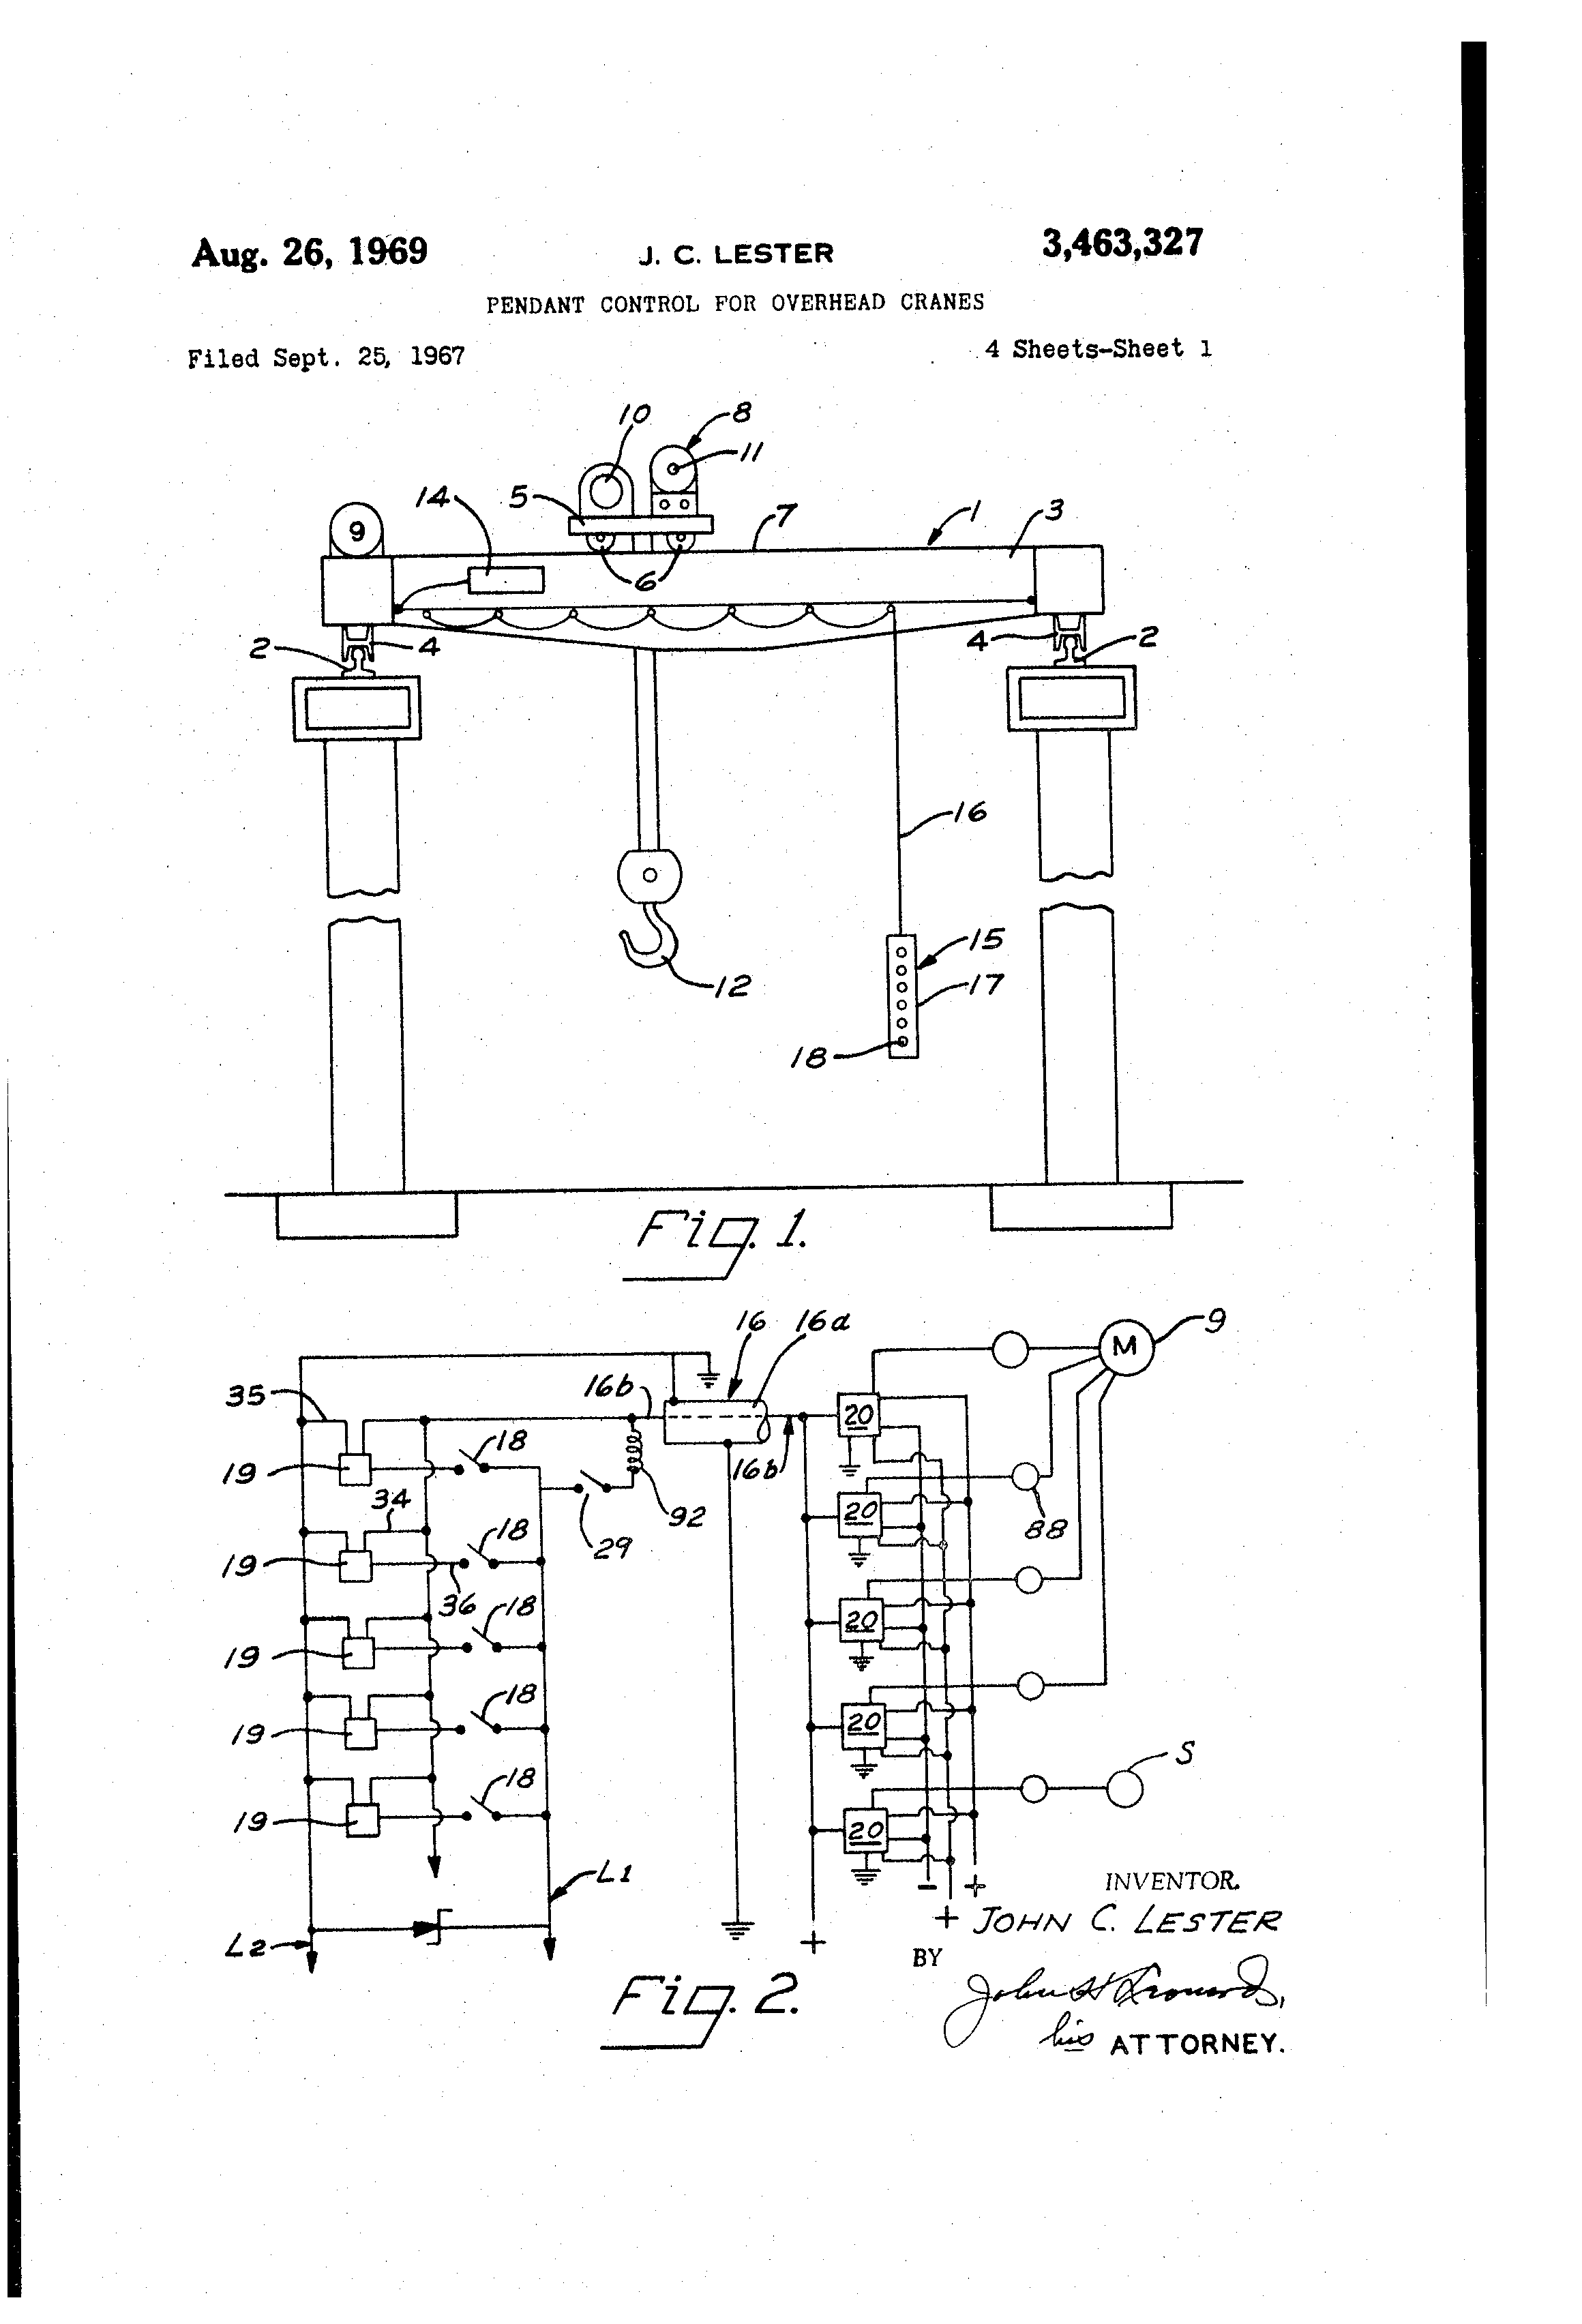 US3463327 0 patent us3463327 pendant control for overhead cranes google lester controls wiring diagrams at webbmarketing.co